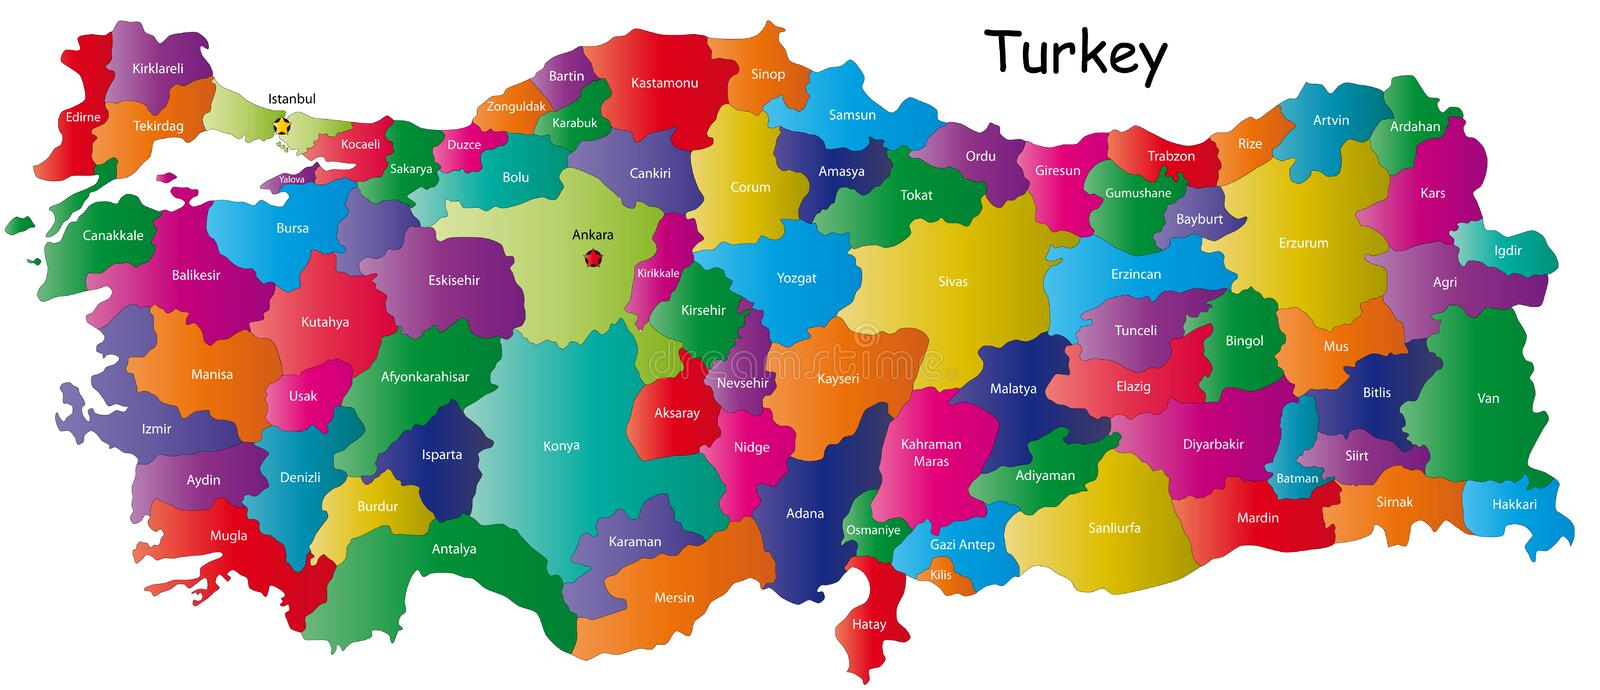 Map of Turkey. Turkey map designed in illustration with regions colored in bright colors. Vector illustration vector illustration